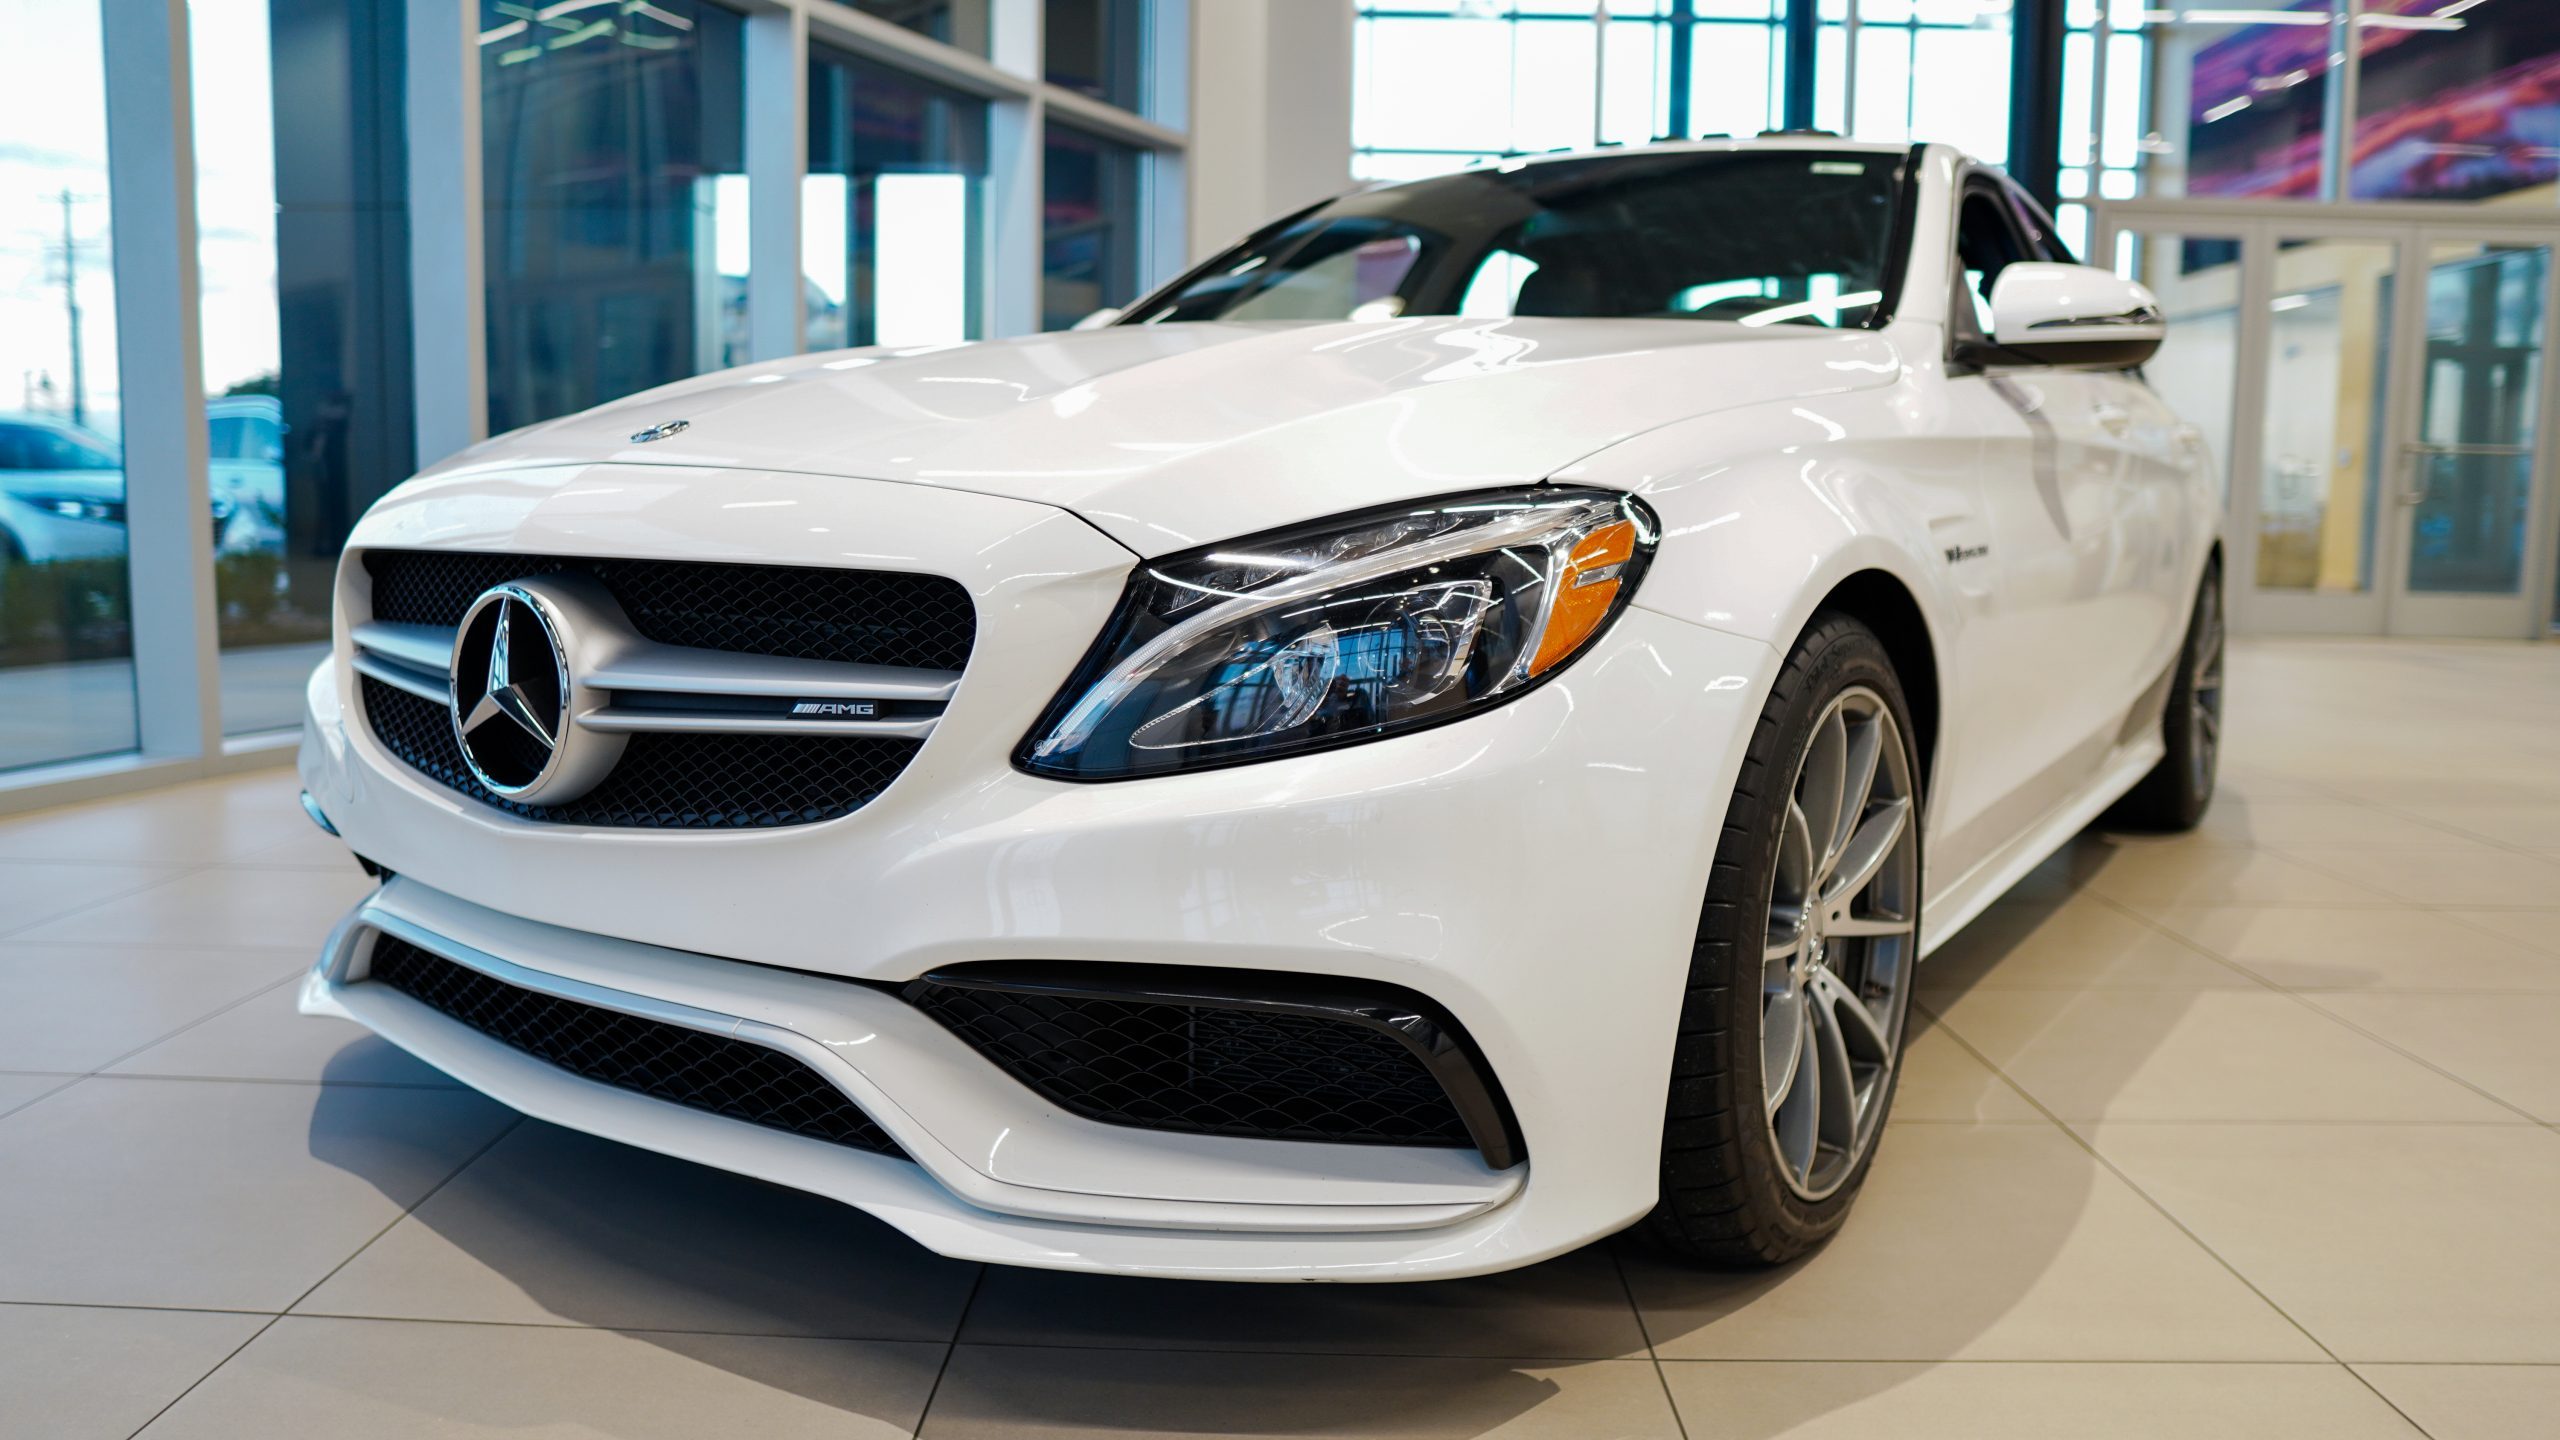 Moss Motors Lafayette >> Pre-Owned Mercedes-Benz Used Cars - Used Cars For Sale in ...